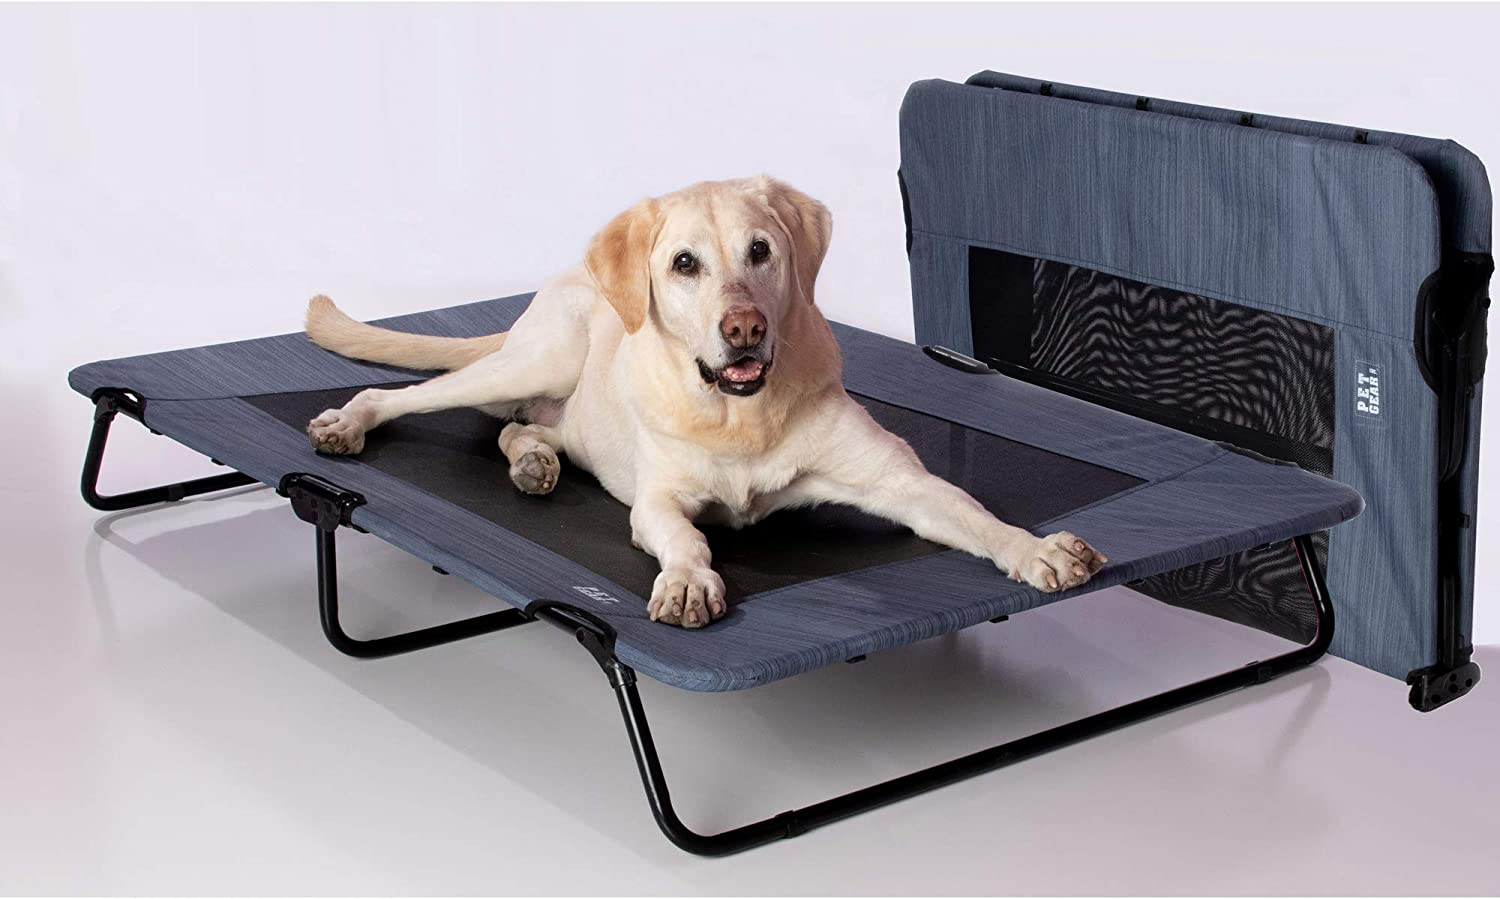 Pet Gear Lifestyle Pet Cot Elevated Bed | No Assembly Required | Premium Tear Resistant Cooling Mesh | Indoor & Outdoor | Lightweight & Portable